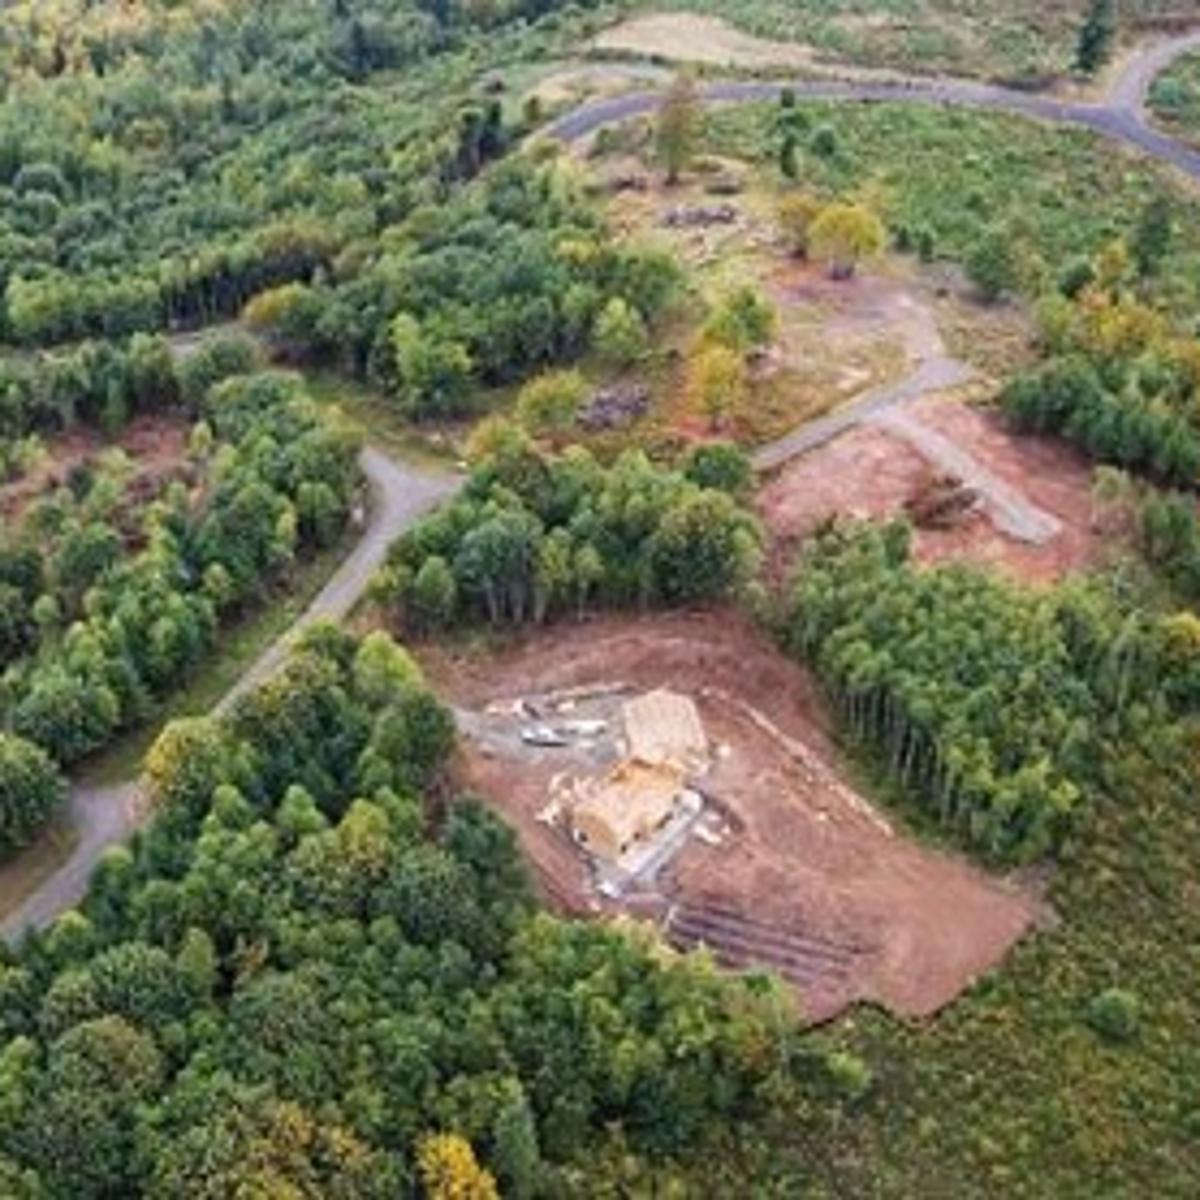 Weyerhaeuser finds real estate more profitable than growing